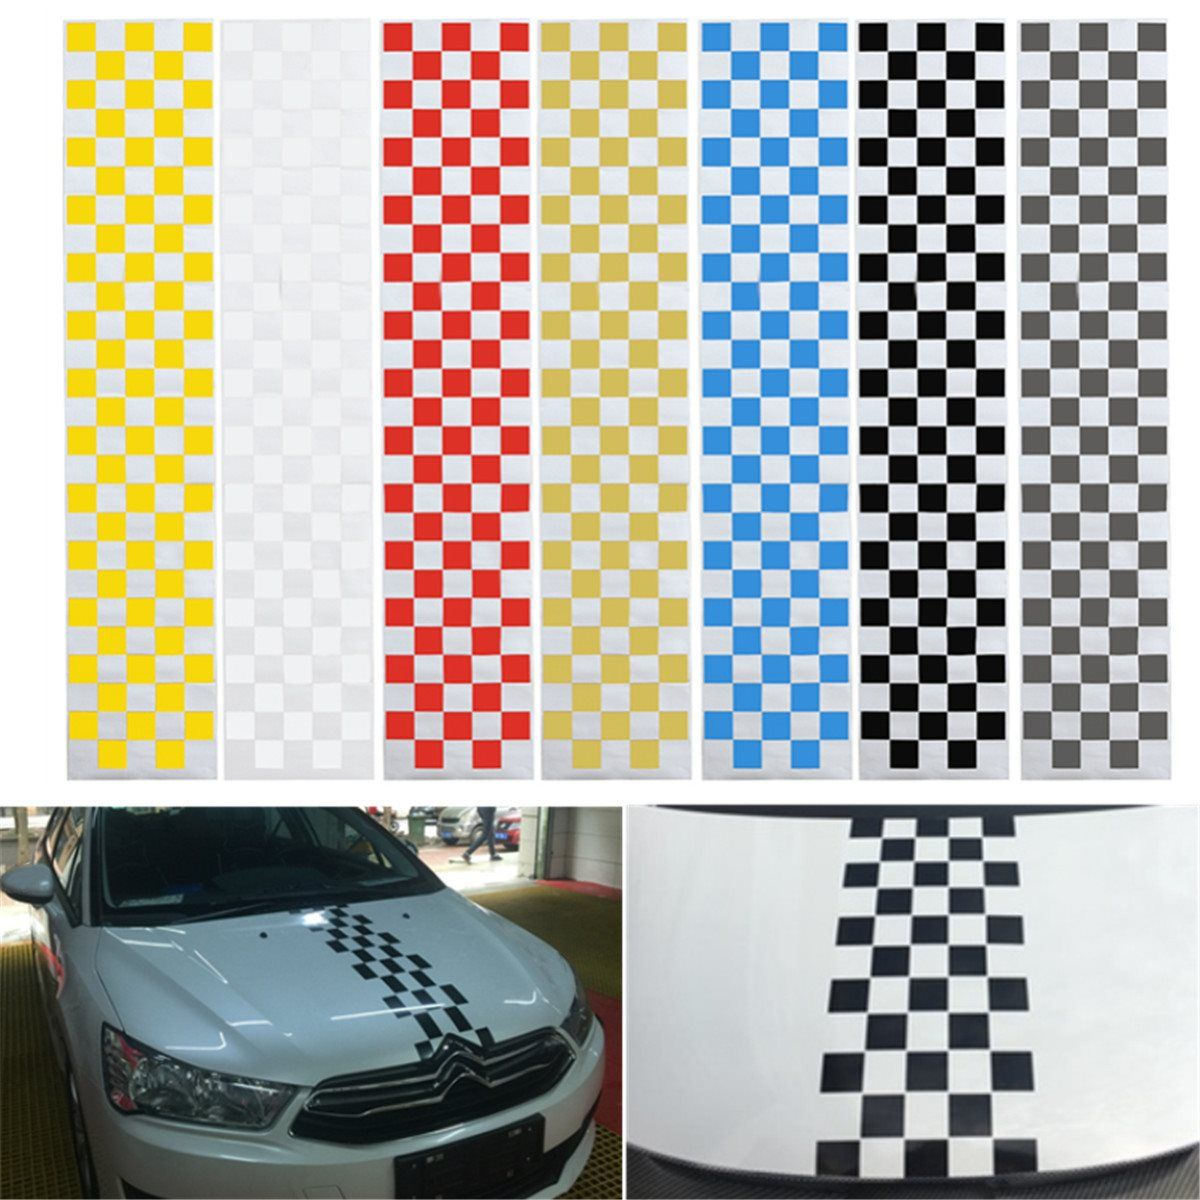 Car Auto SUV Hood Scratched Check Stickers Engine Cover Styling Decal Vinyl DIY Decoration PVC 7Colors